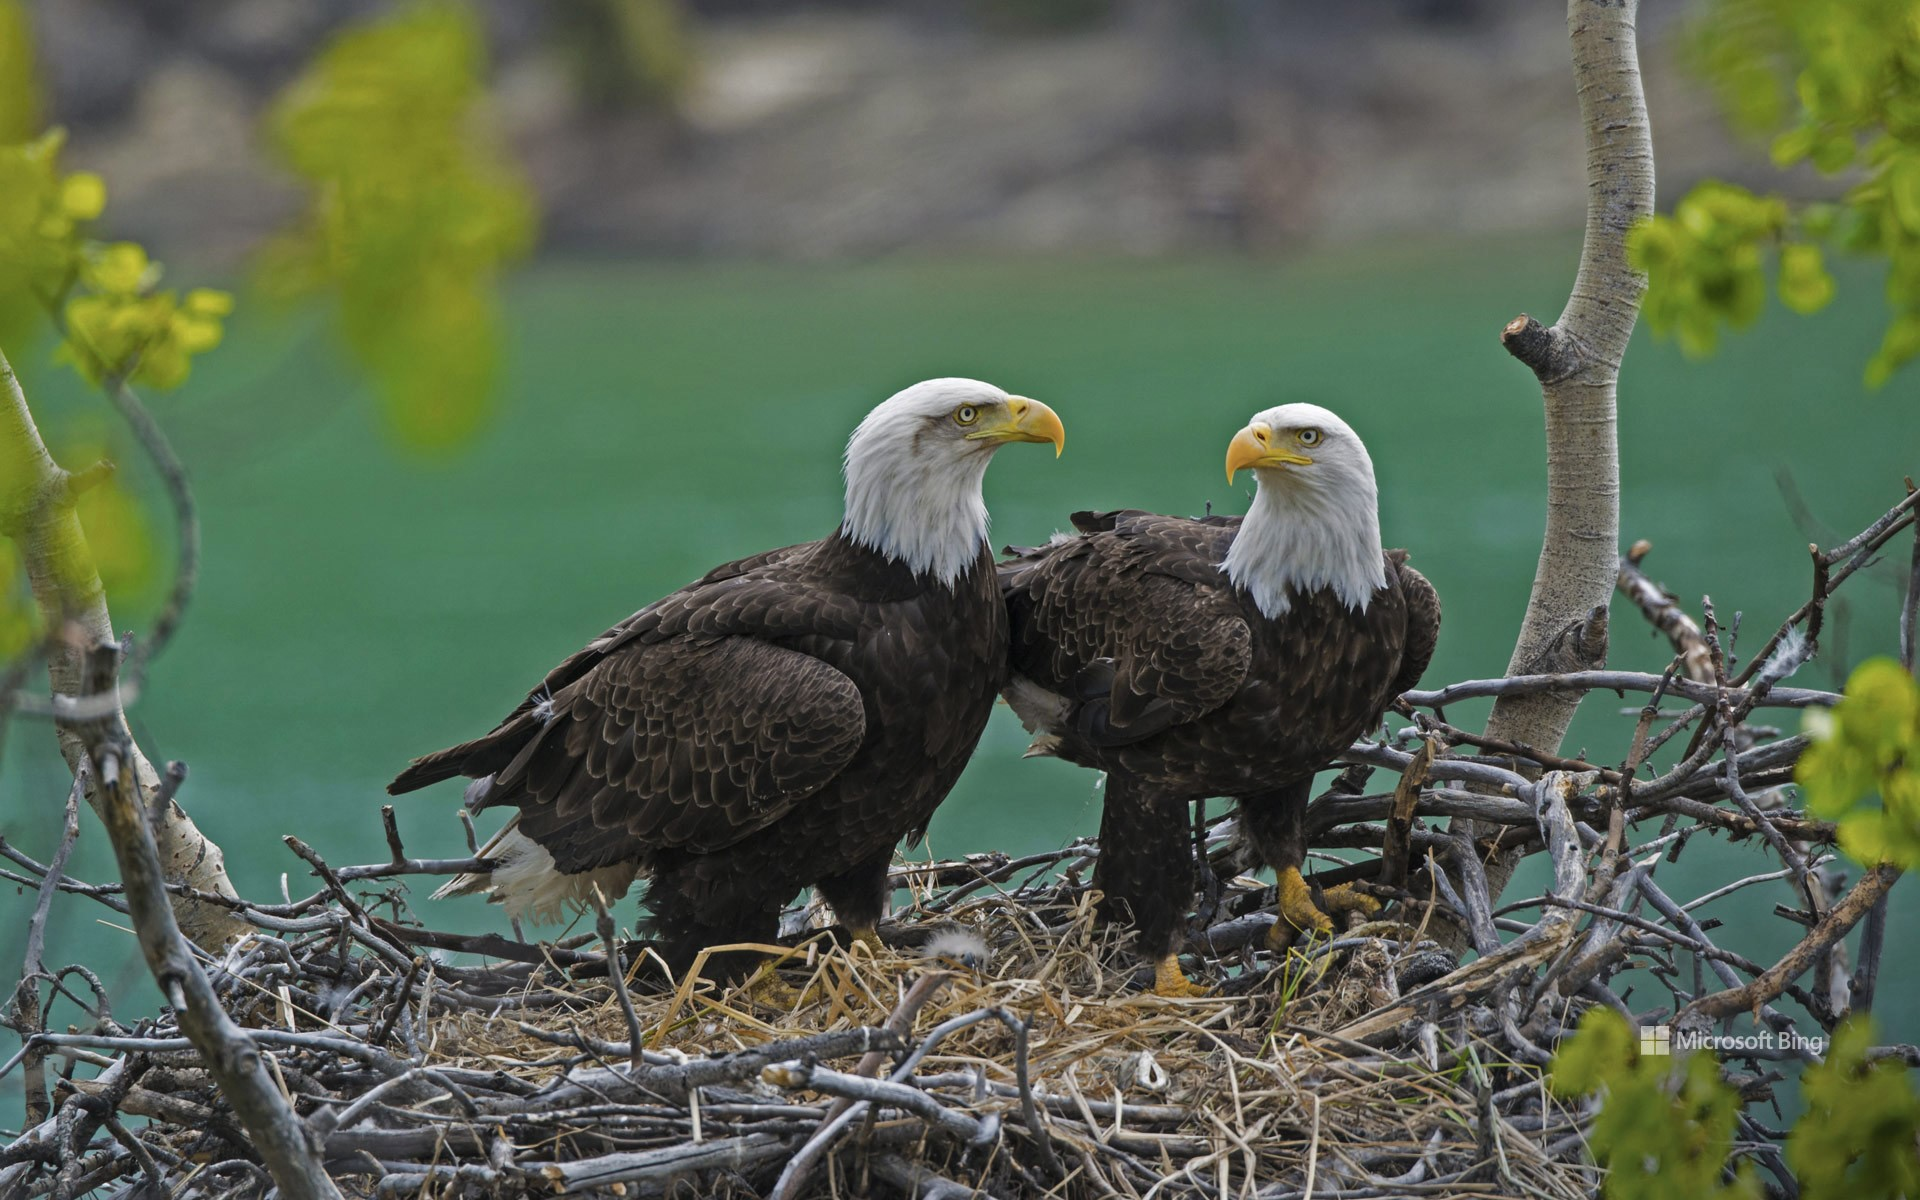 Bald eagle pair with a chick in their nest near the Yukon River, Yukon, Canada